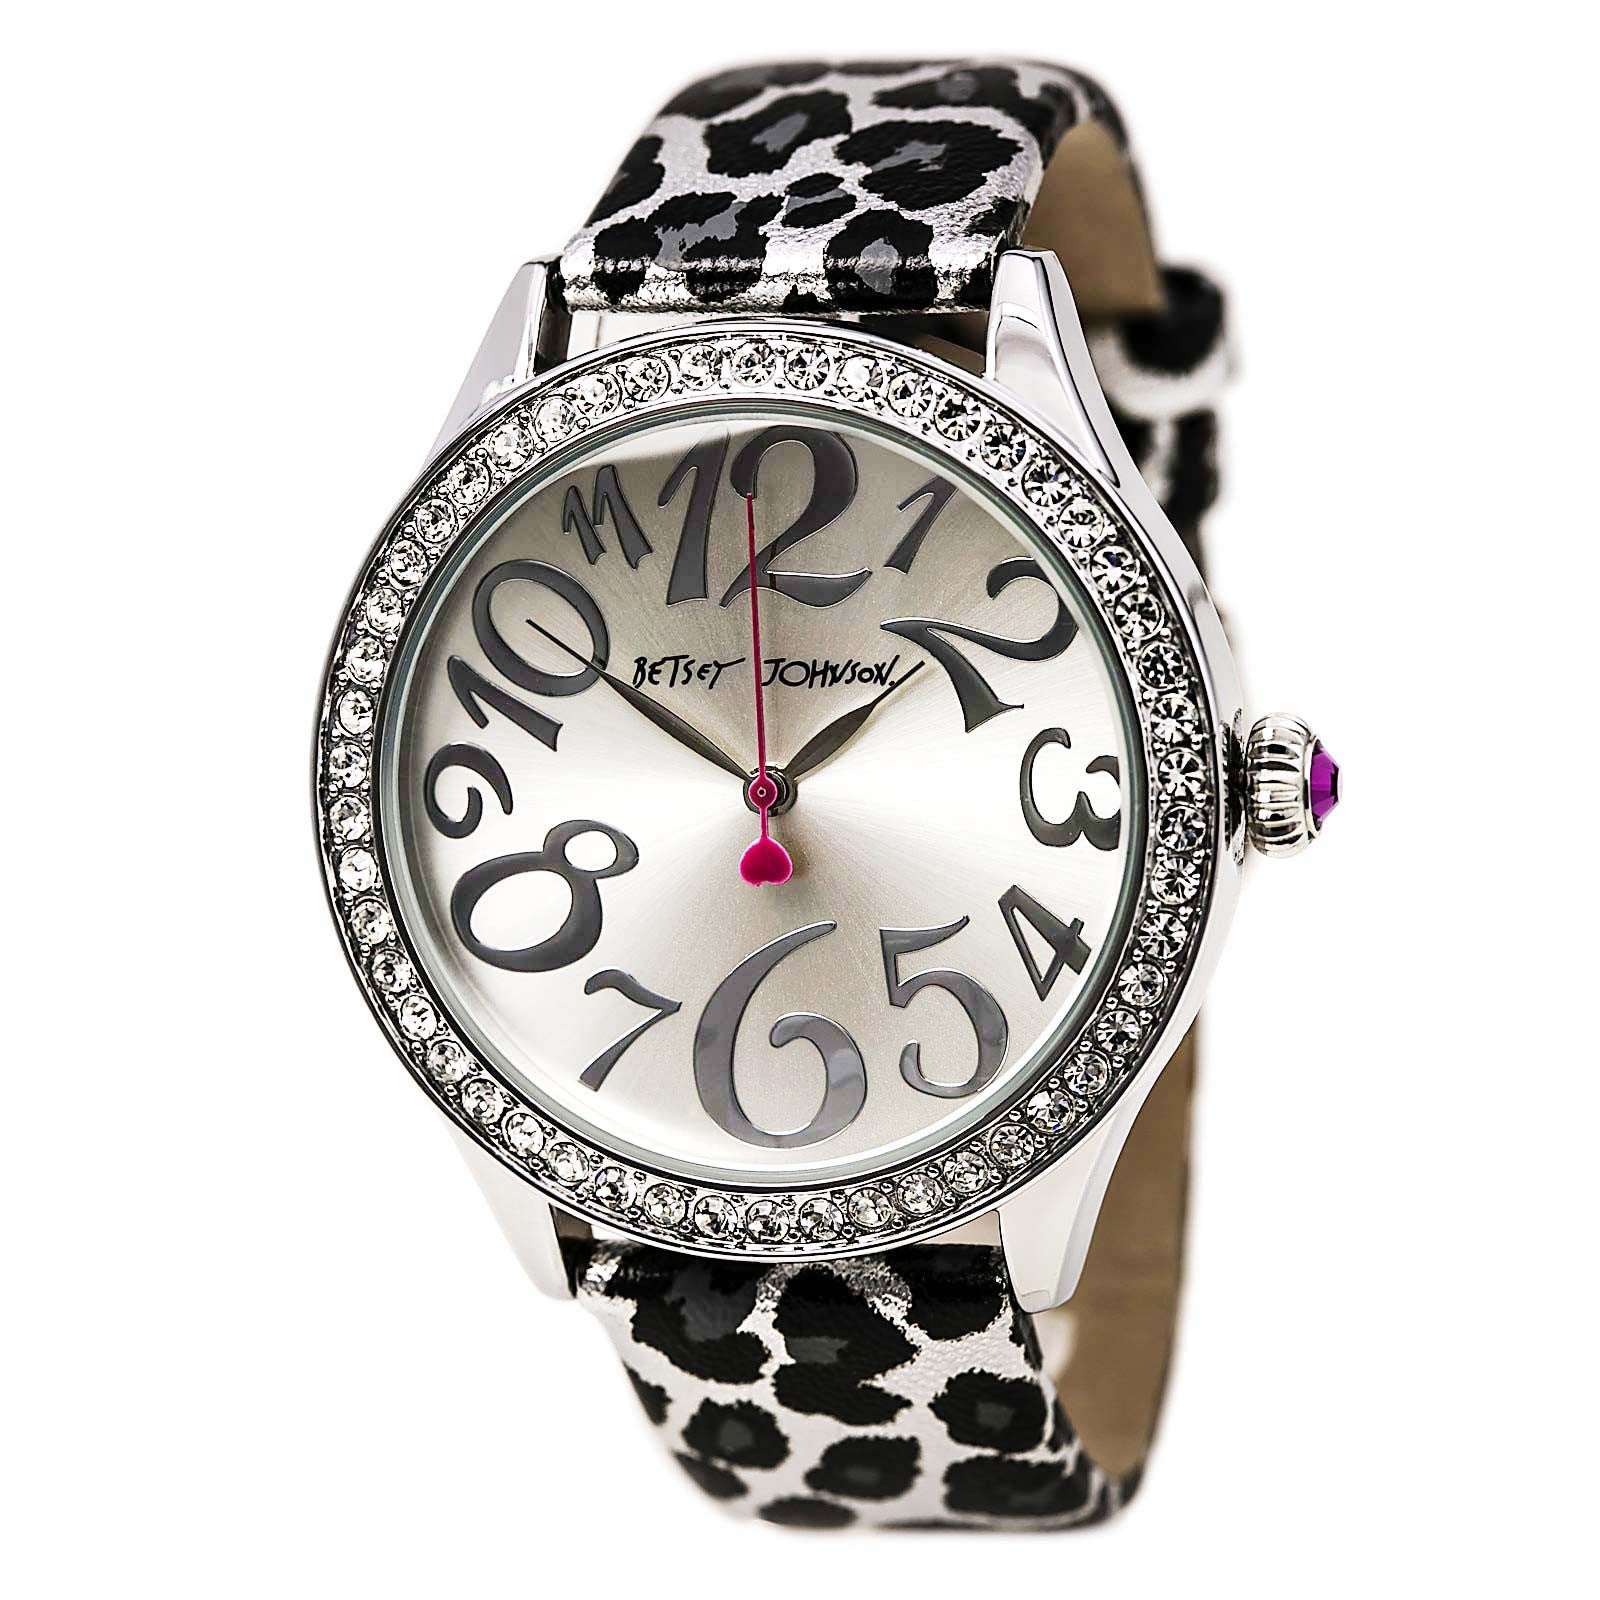 Betsey Johnson BJ00131-09 Women's Crystal Bezel Silver Dial Leopard Printed Leather Strap Watch